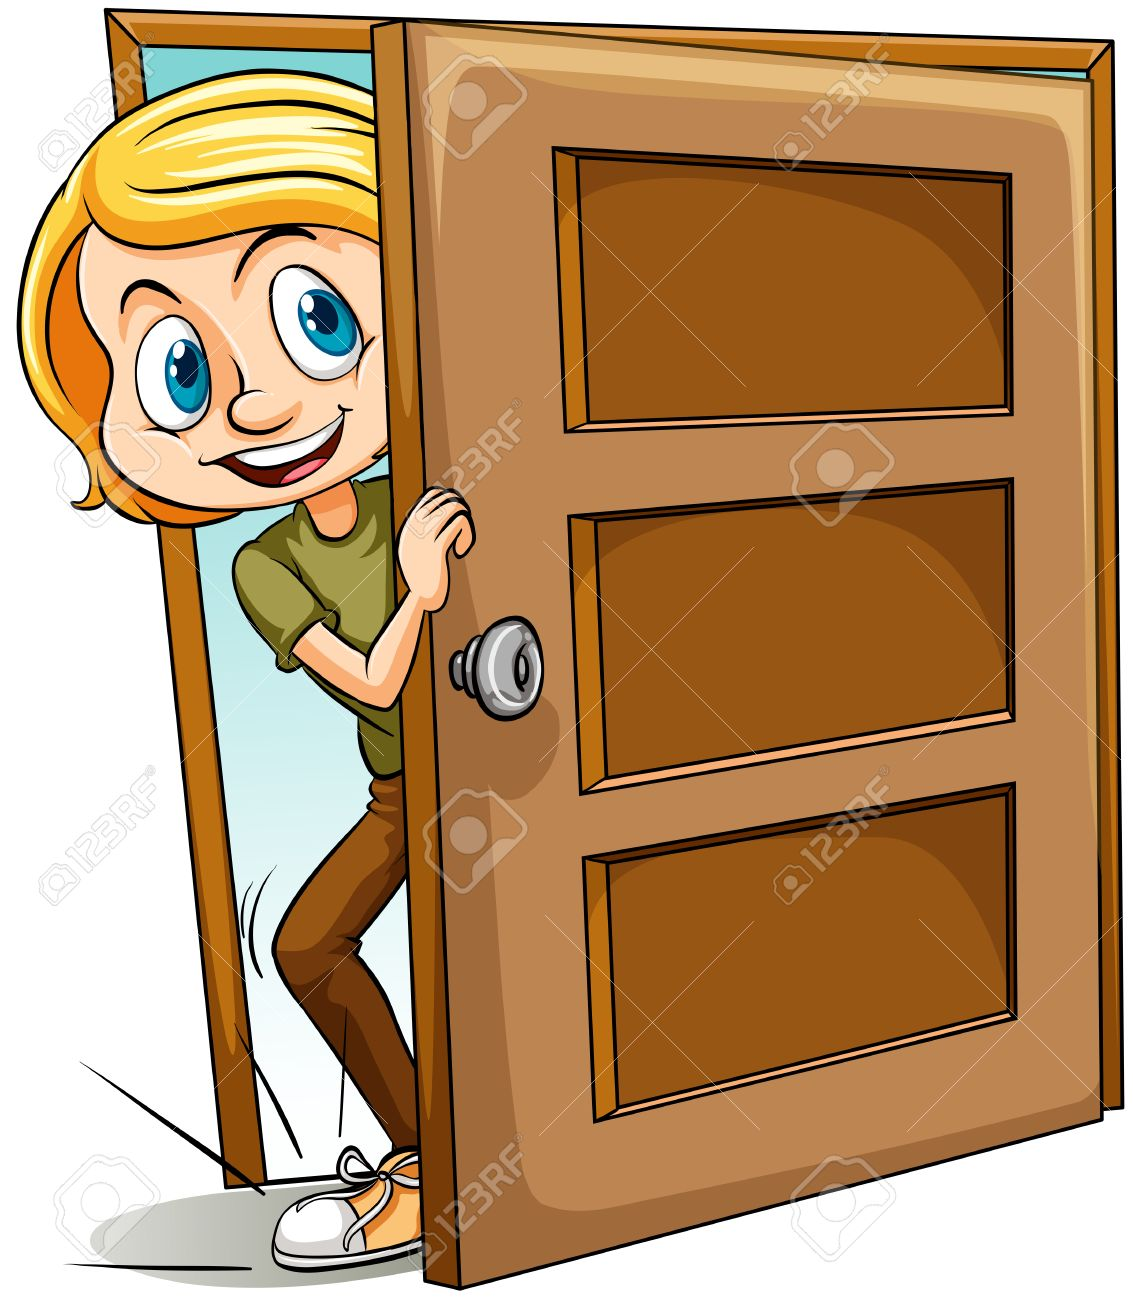 Open Door Clipart 34,954 open door stock illustrations, cliparts and royalty free